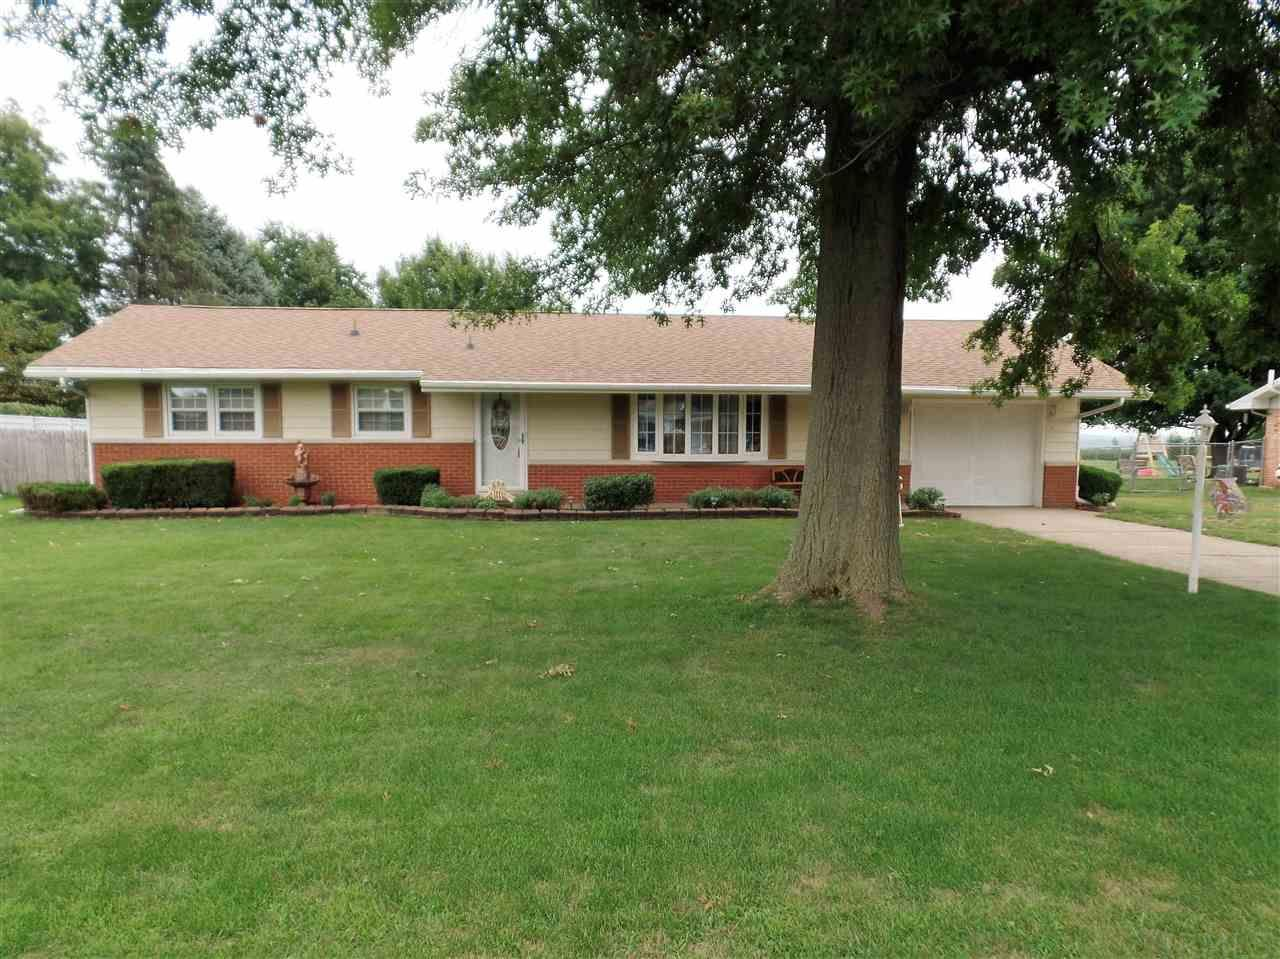 58330 Pam South Bend, IN 46619